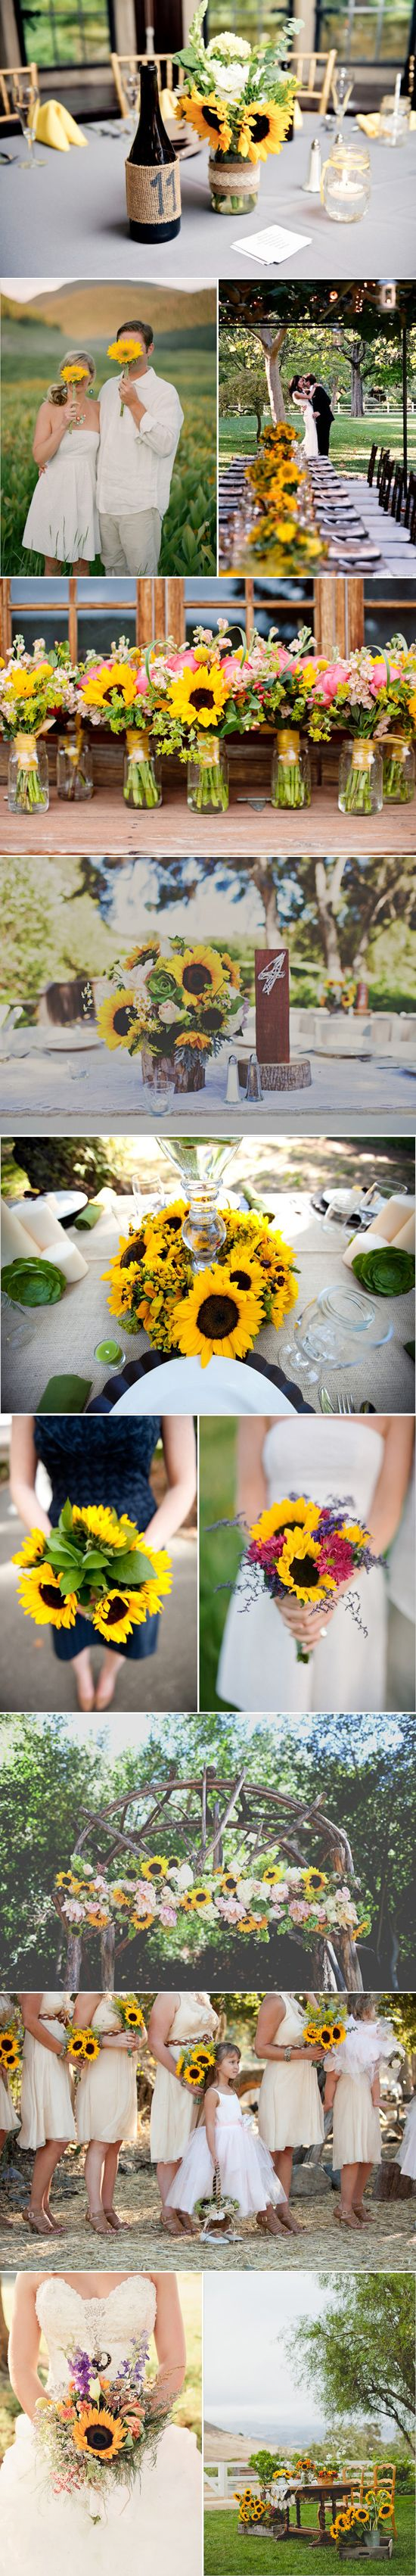 I love sunflowers for their bold, bright shape and colour. Here we show some sunflower wedding inspiration ideas